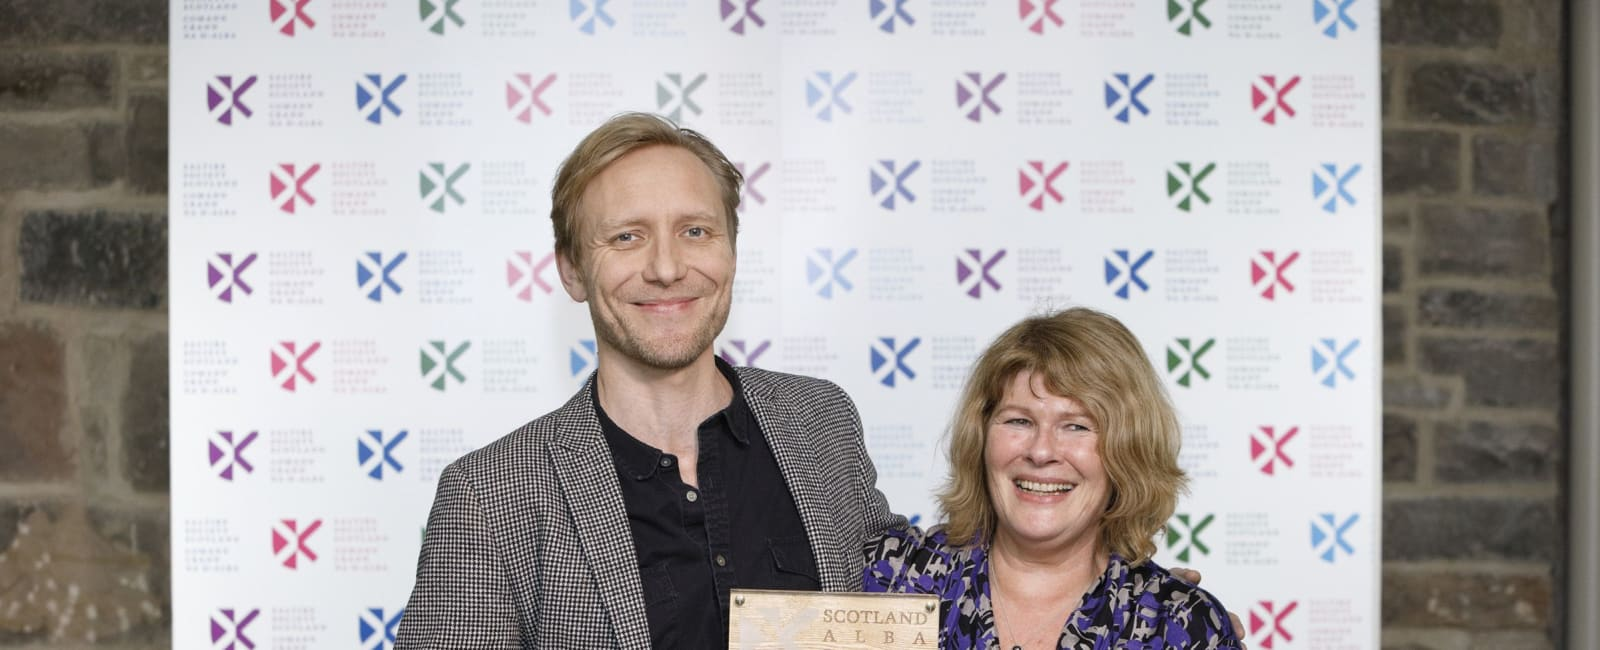 Scotland's National Book Awards 2018: Watch Again